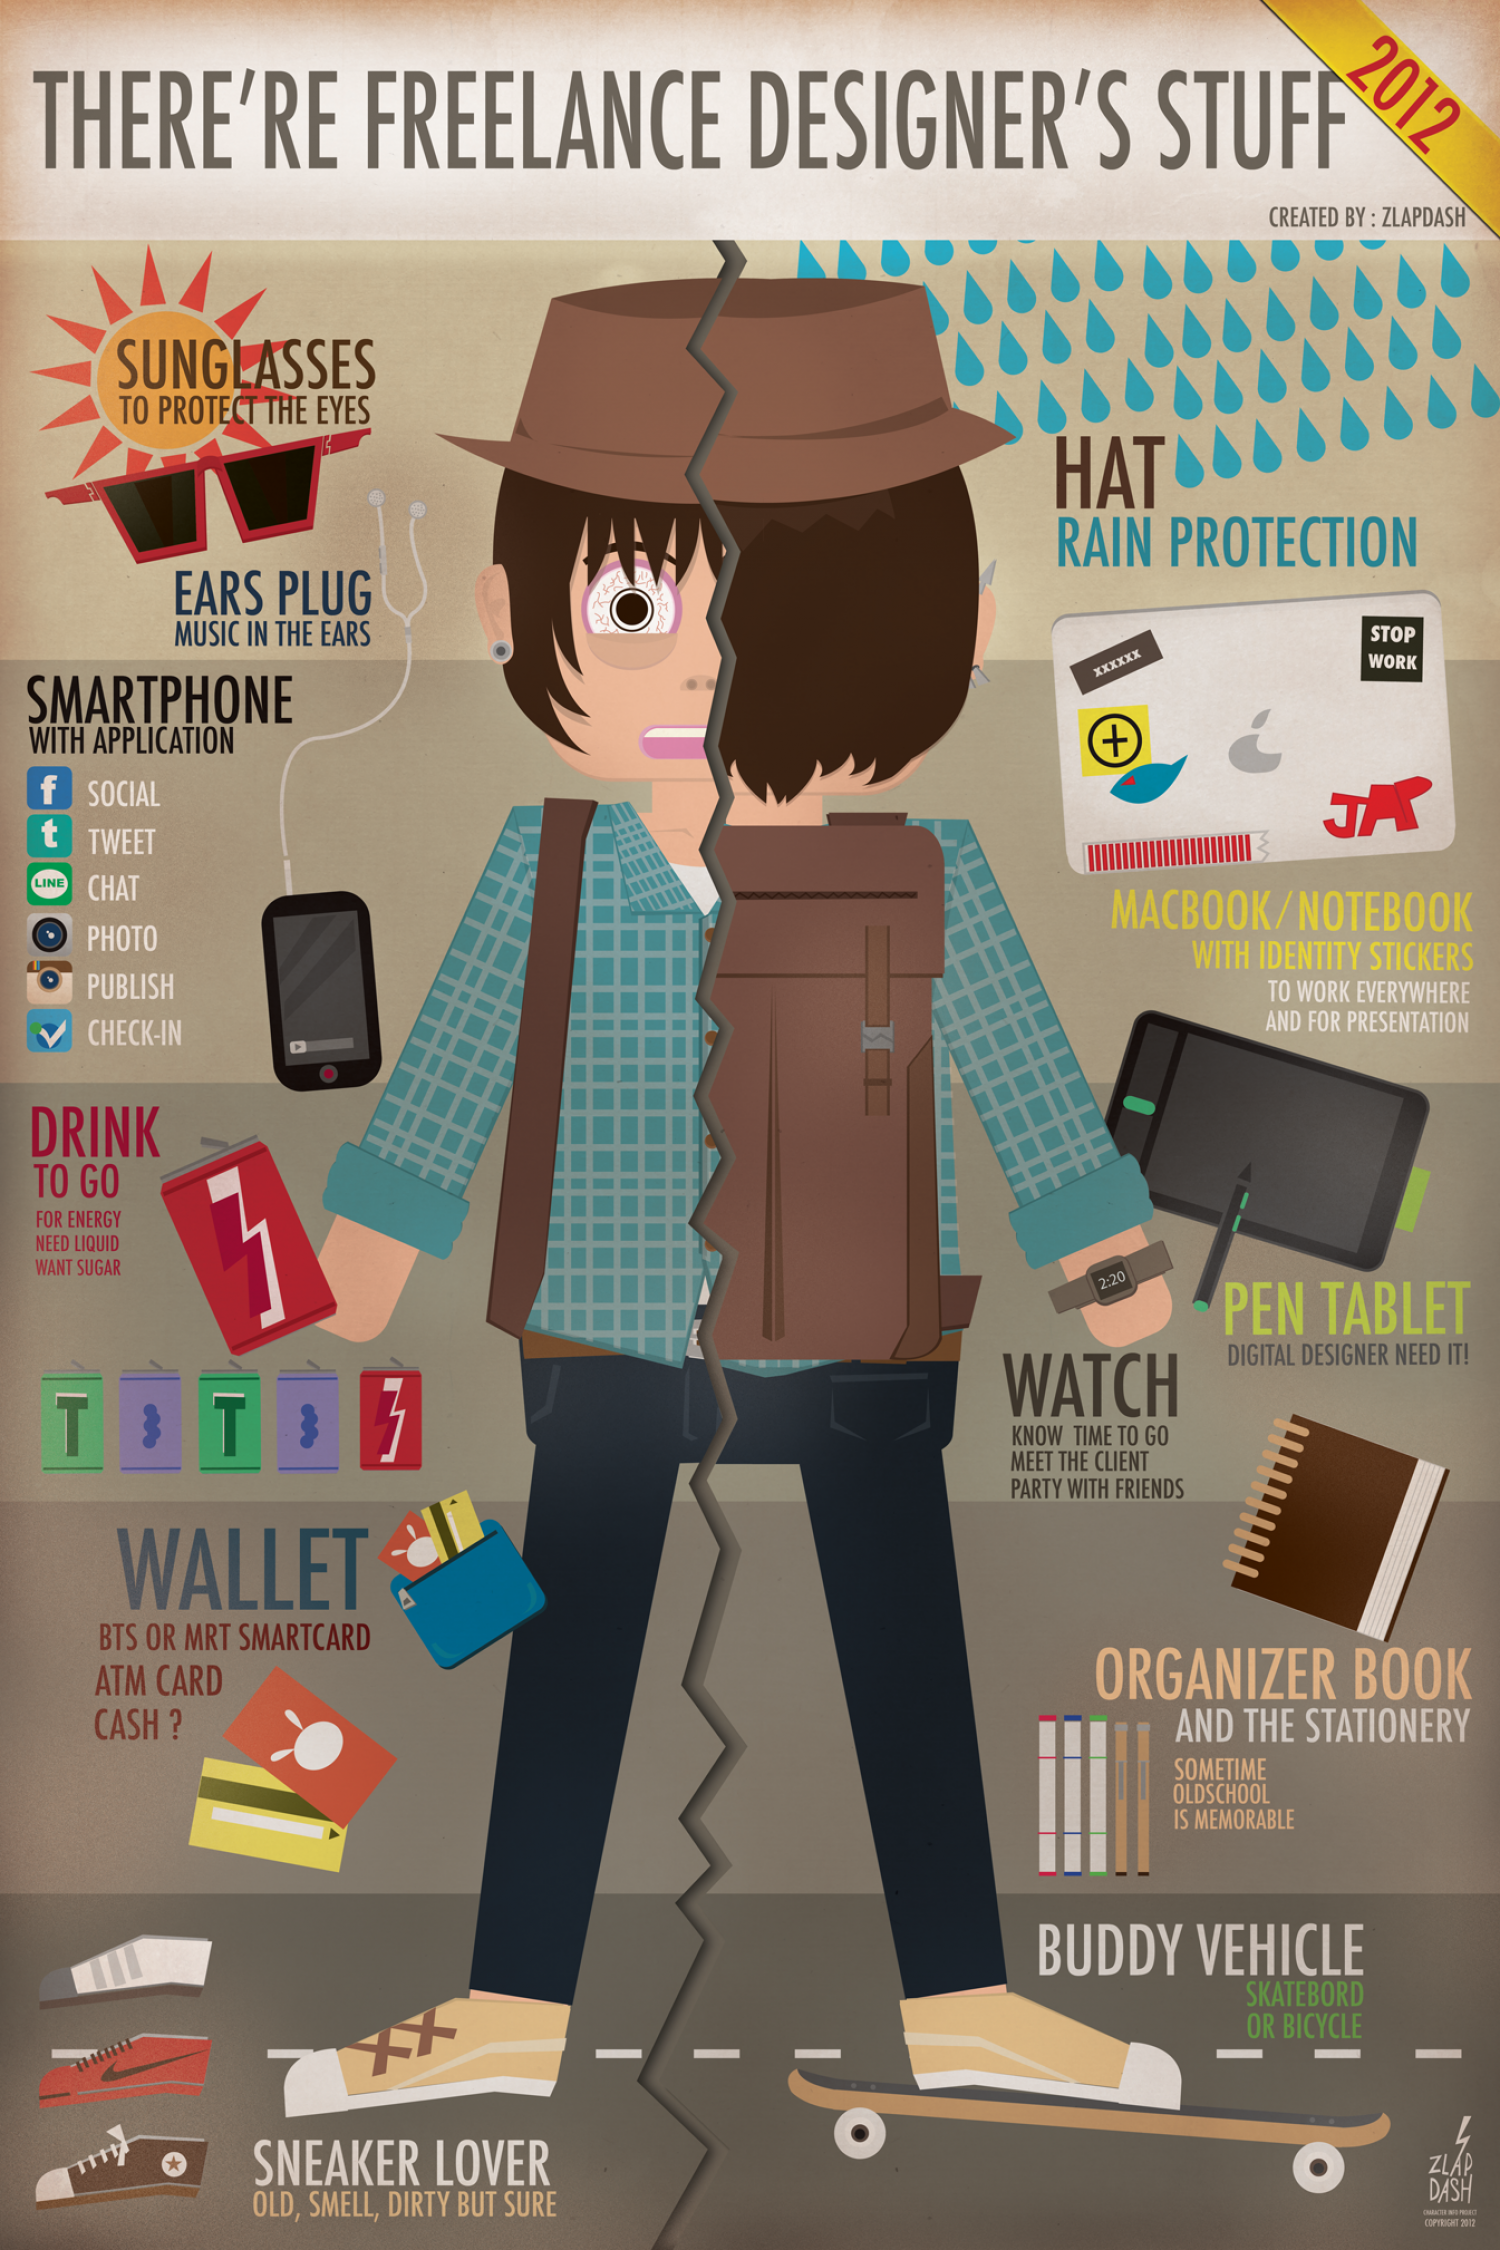 There're freelance designer's stuff Infographic